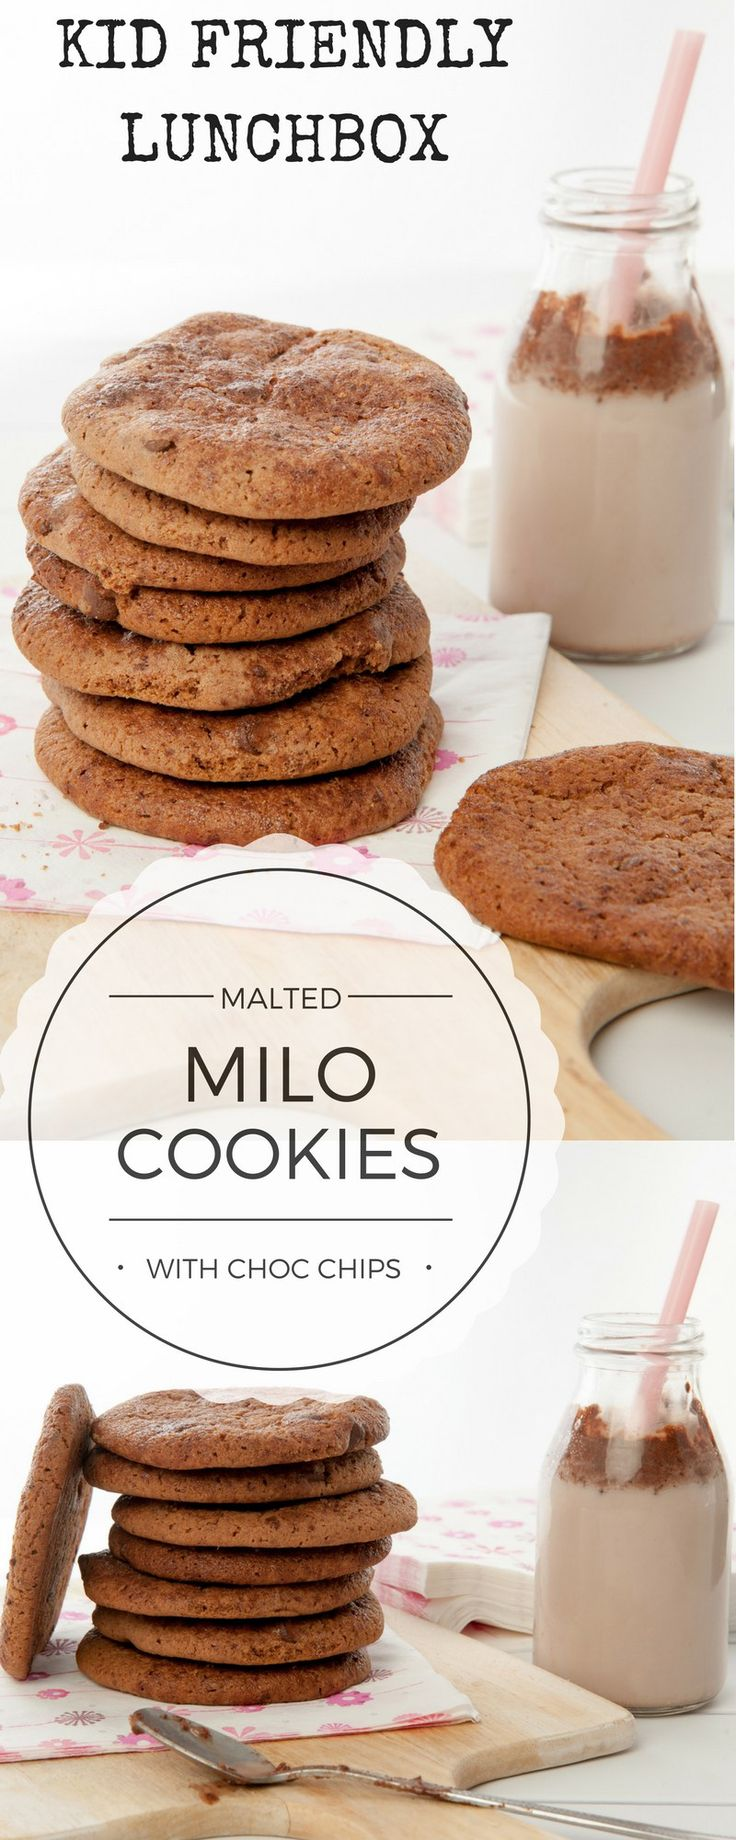 Malted Milo Cookies - The best ever lunch box cookie! Quick and easy to make. #chocolate #lunchbox #cookies #thermomix